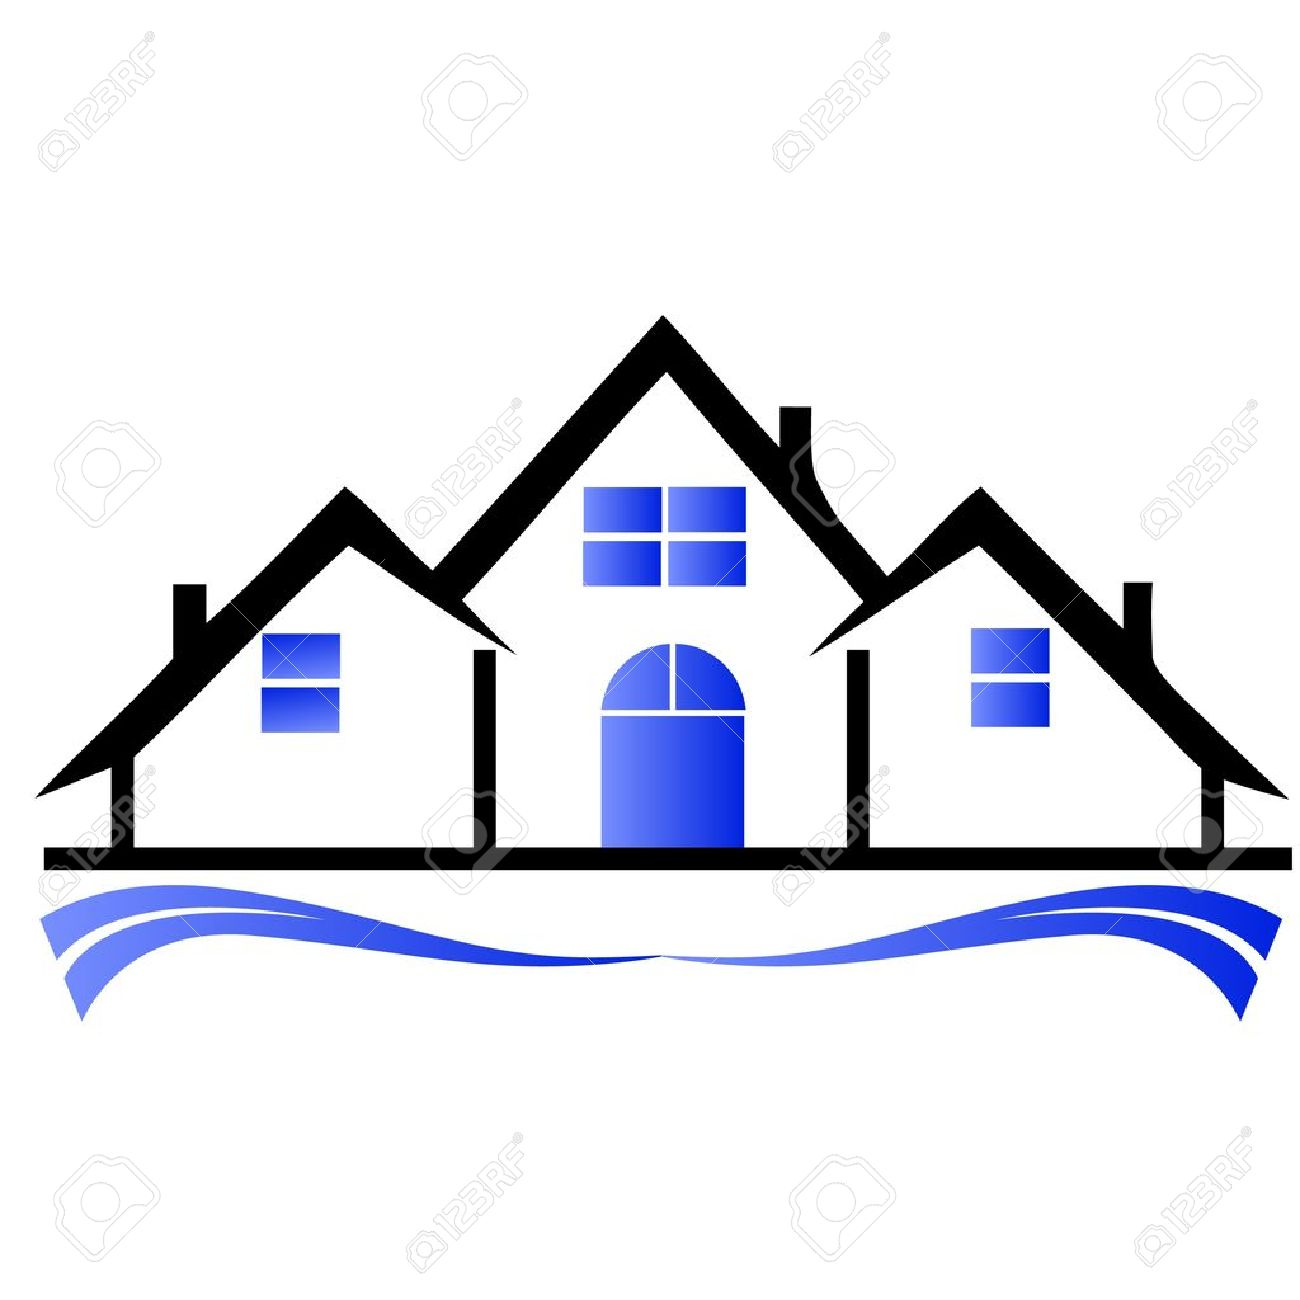 houses real estate logo royalty free cliparts vectors and stock rh 123rf com real estate sold sign free clip art free real estate clipart graphics